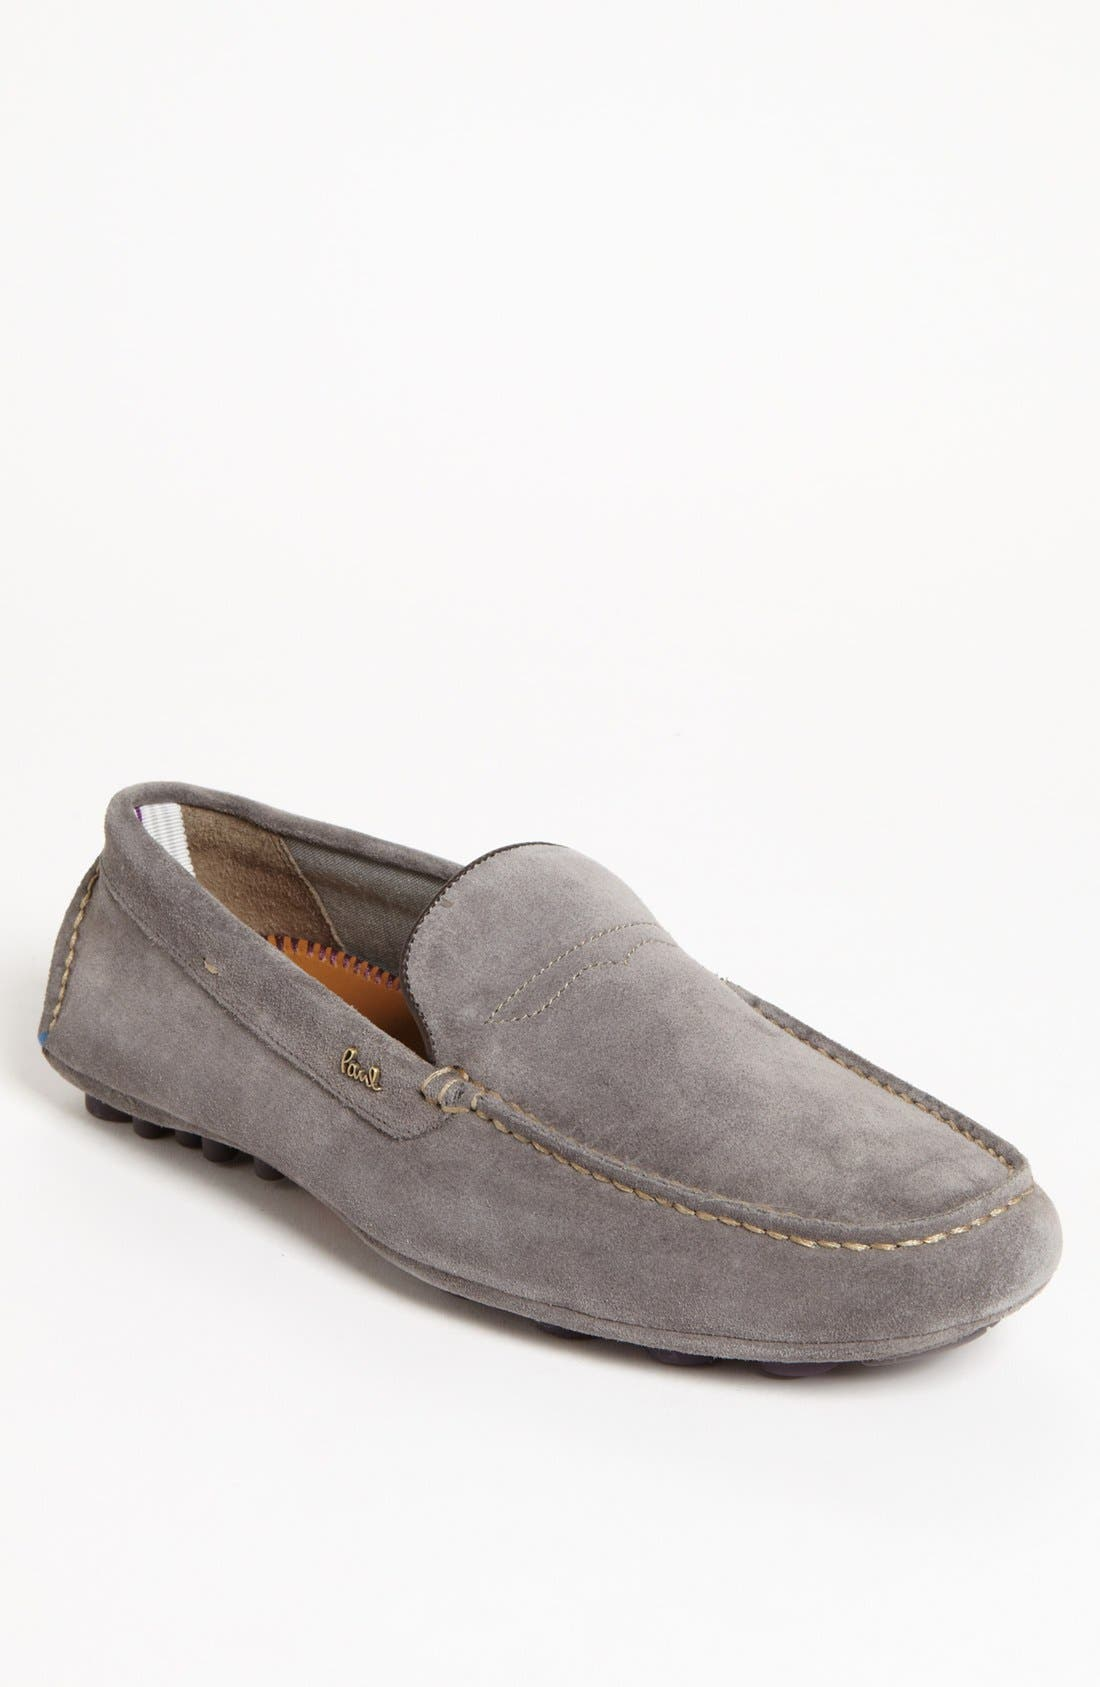 Alternate Image 1 Selected - Paul Smith 'Rico' Driving Shoe